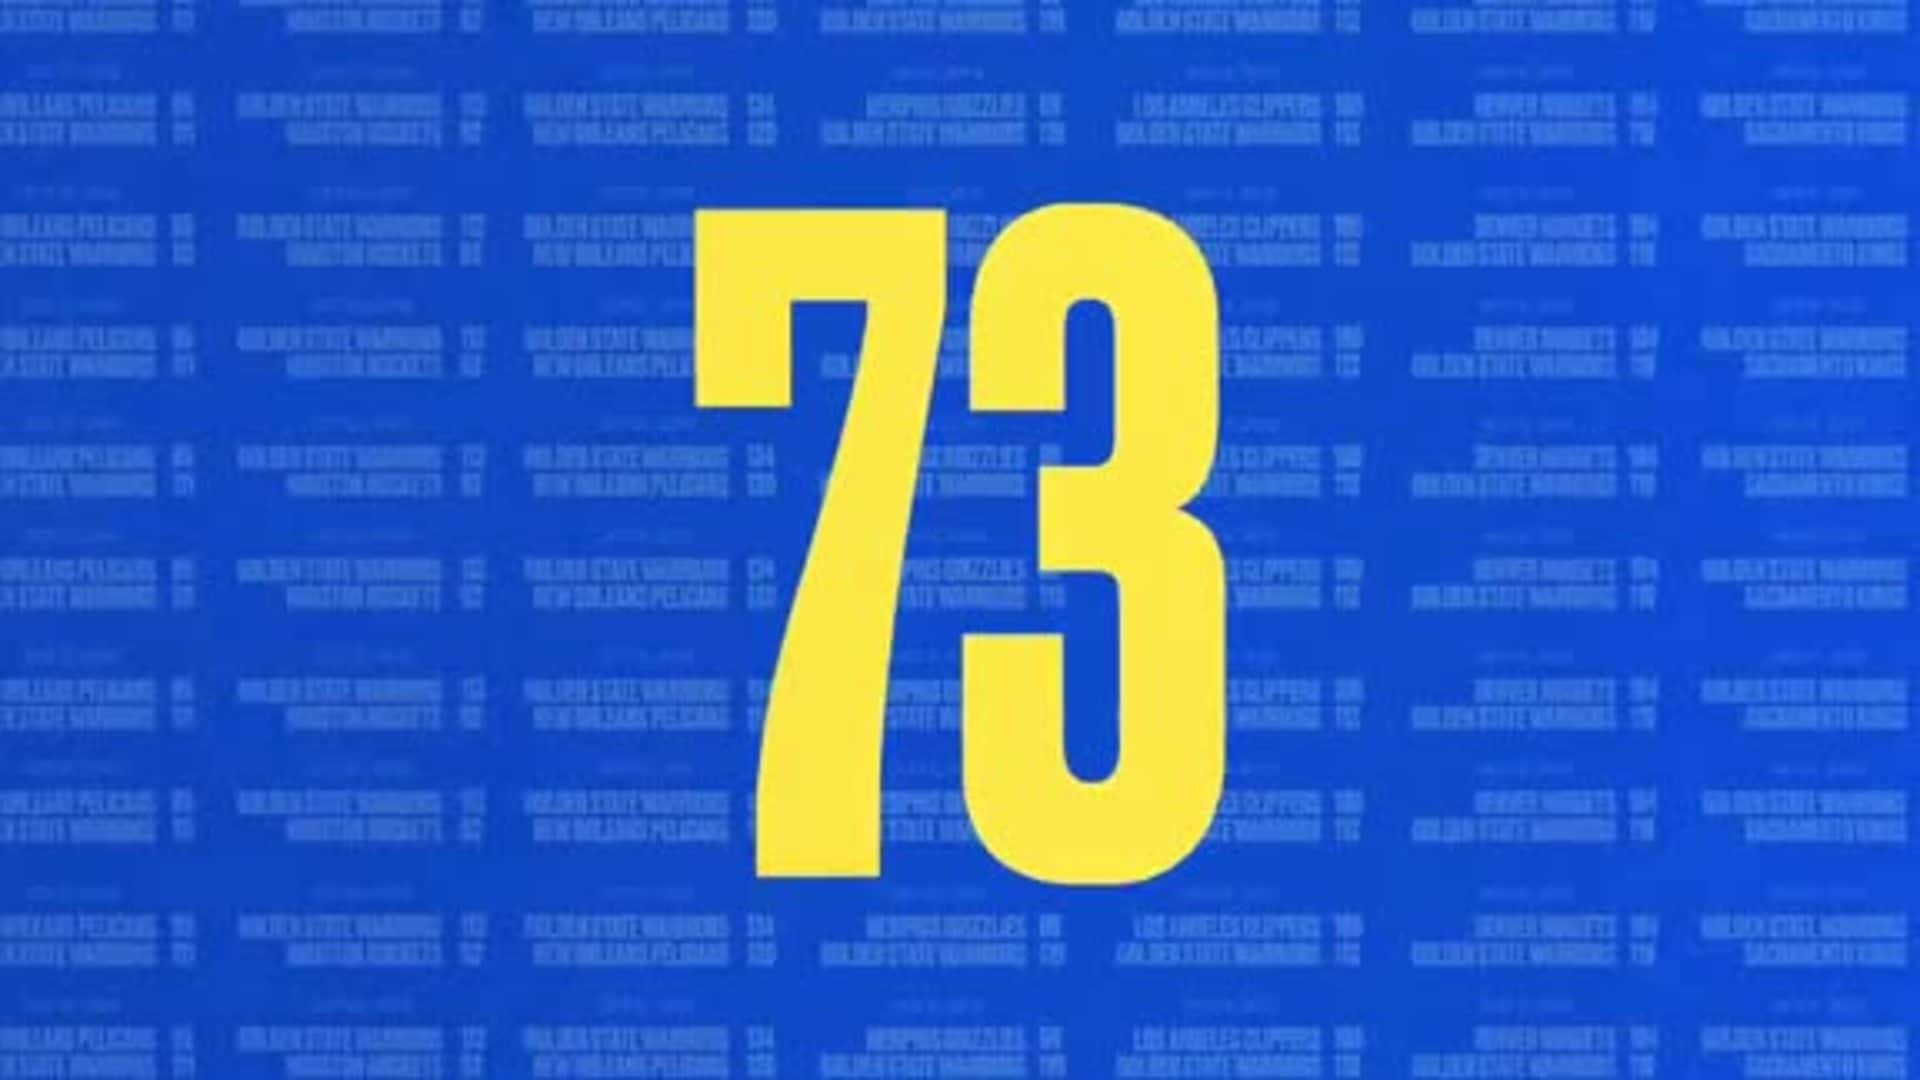 Warriors Archive: Dubs Make NBA History with 73 Wins